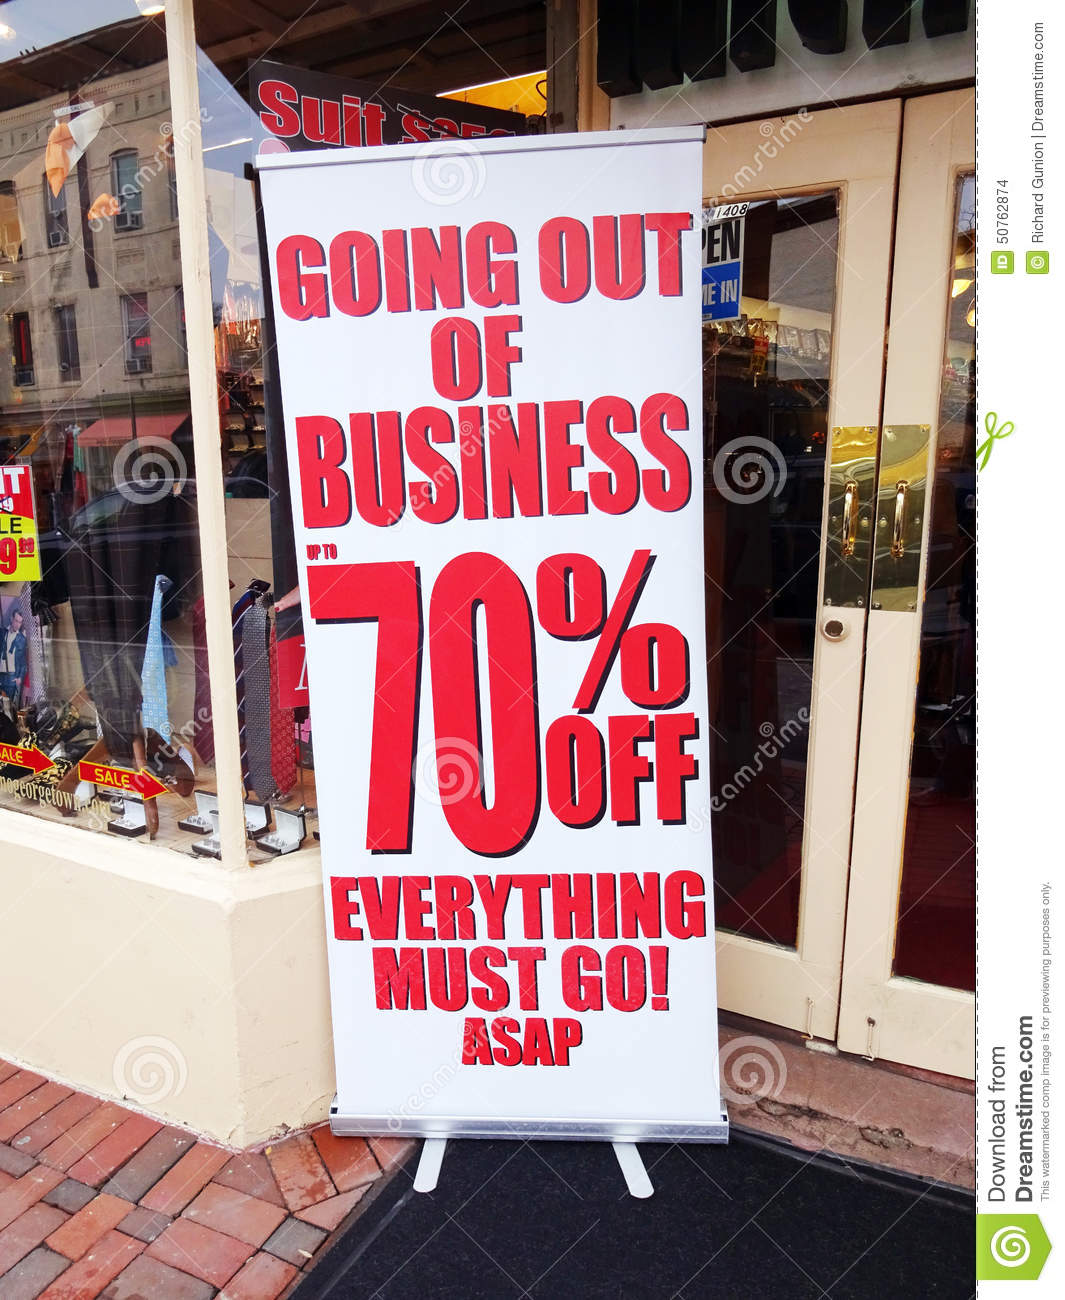 Clothing stores in georgetown dc